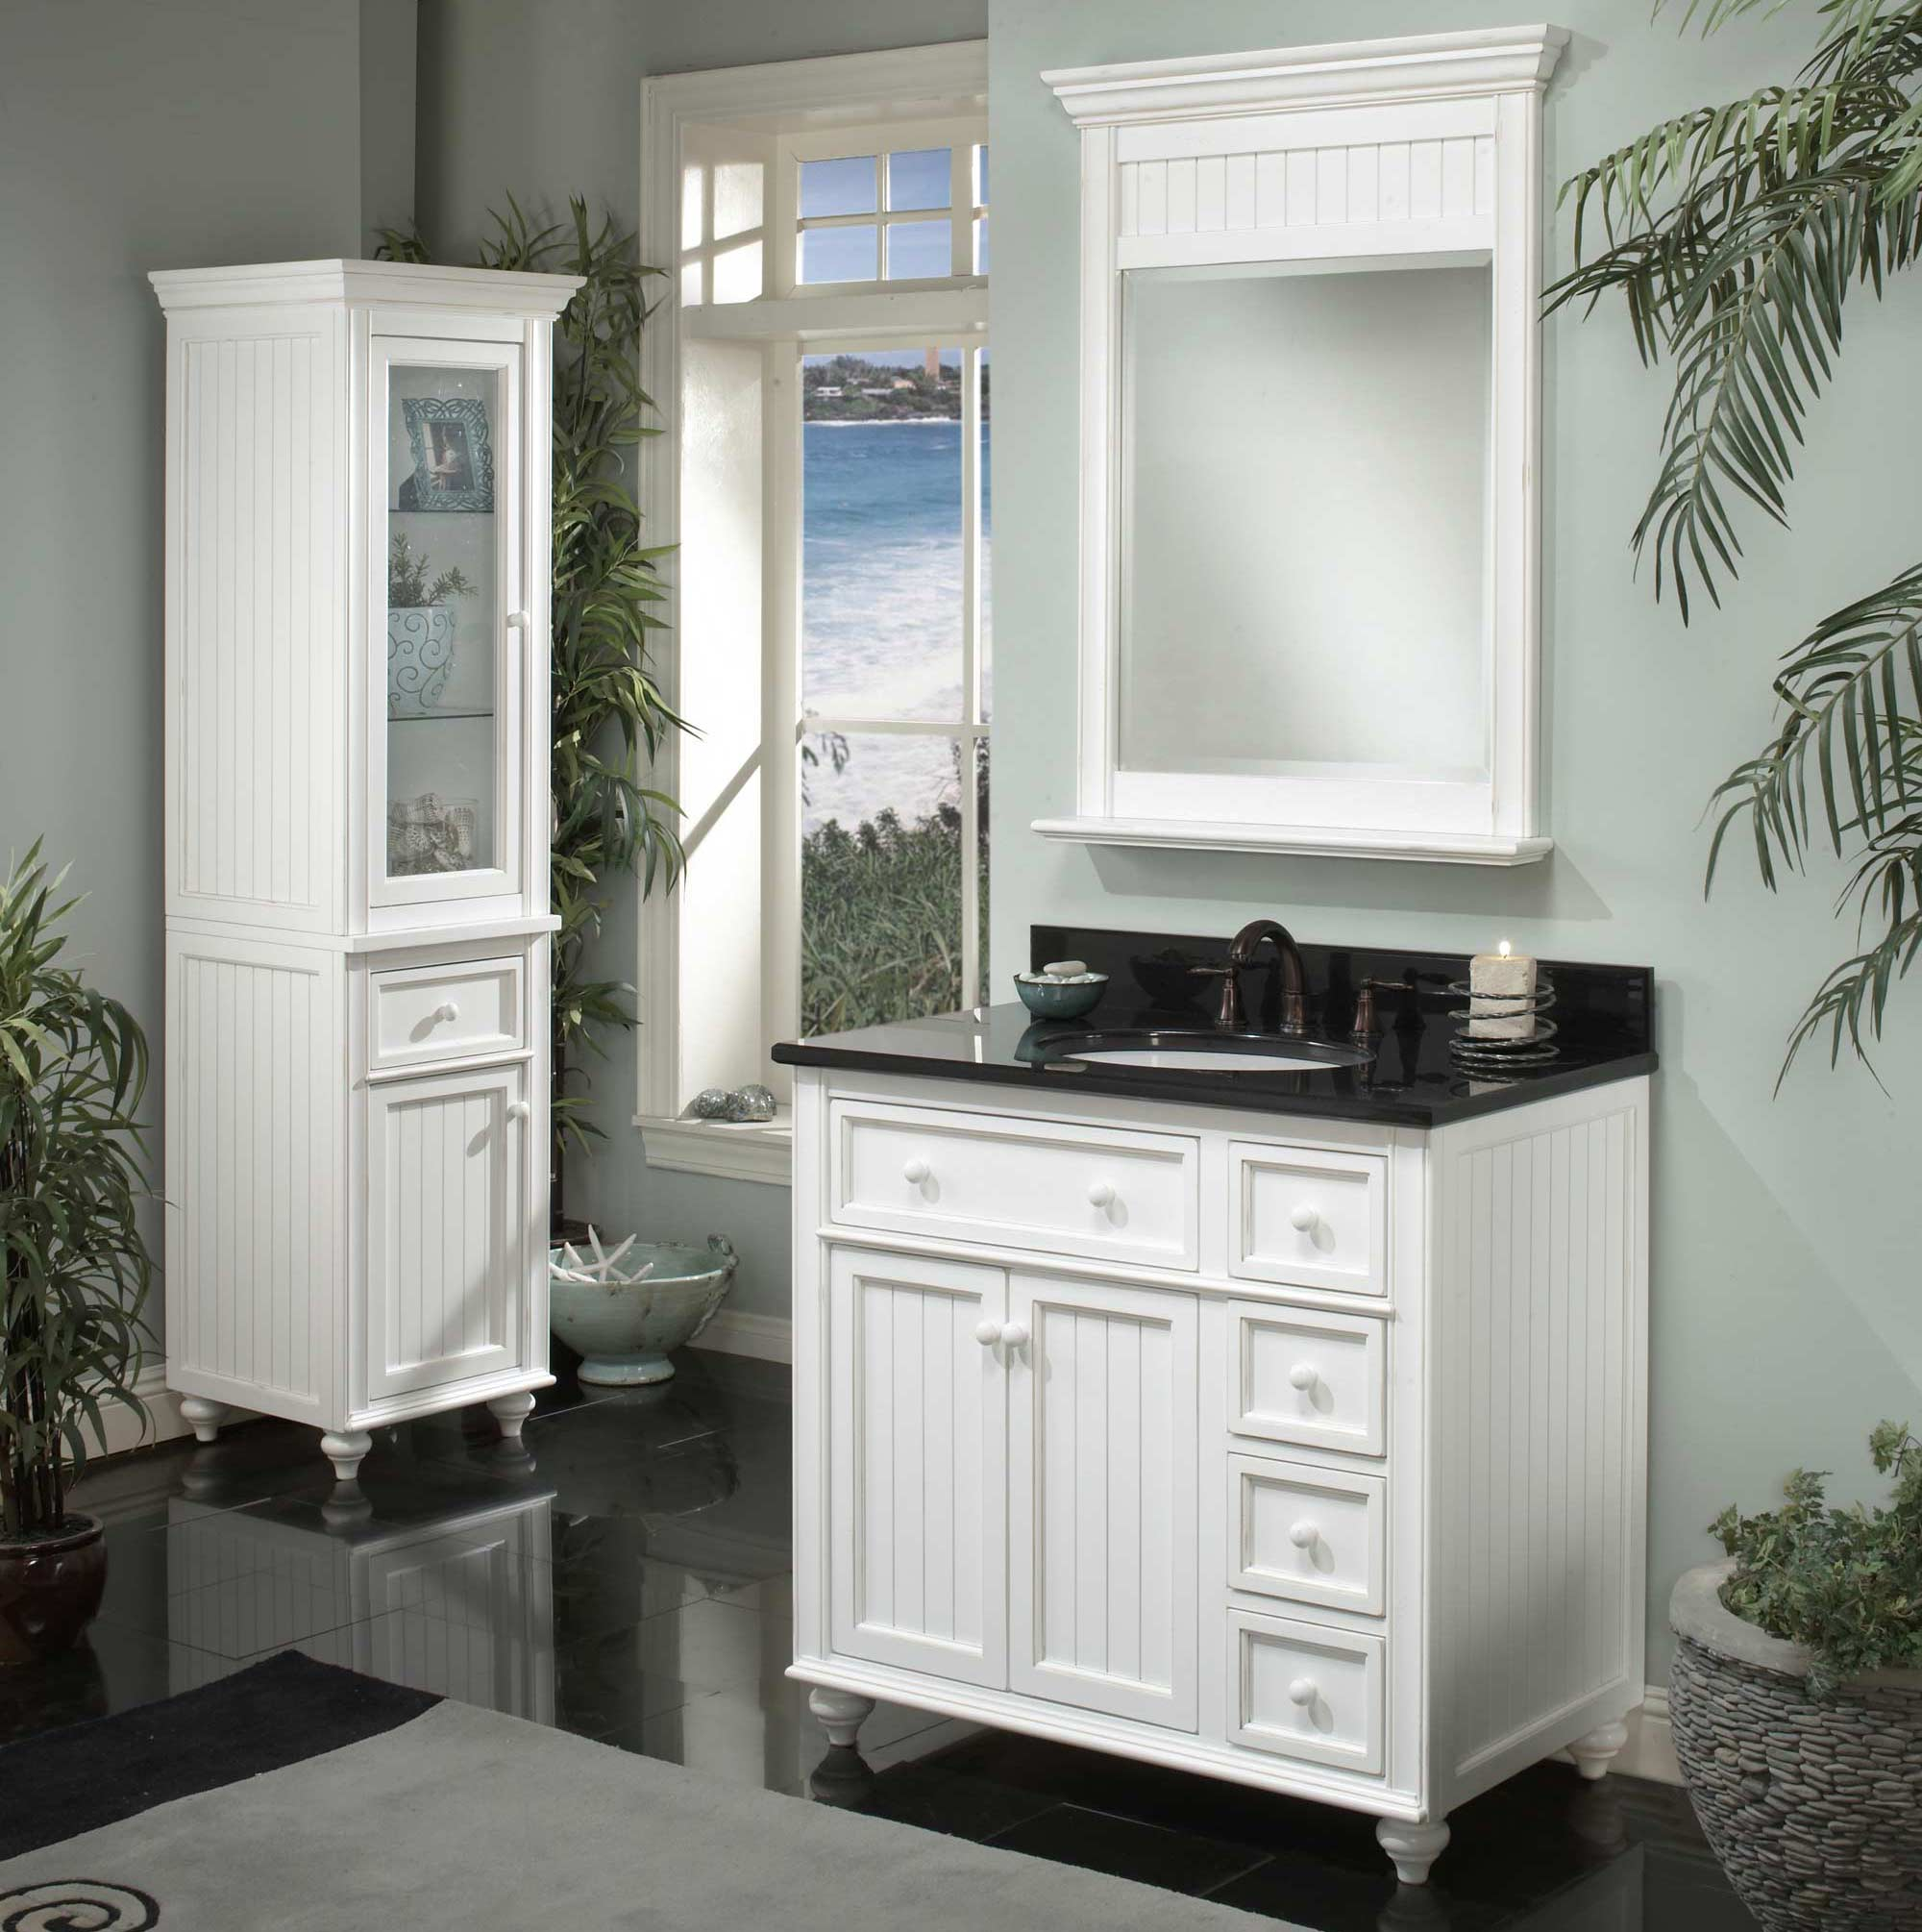 elegant black wooden bathroom cabinet inexpensive 50 bathroom vanity ideas ingeniously prettify you and your